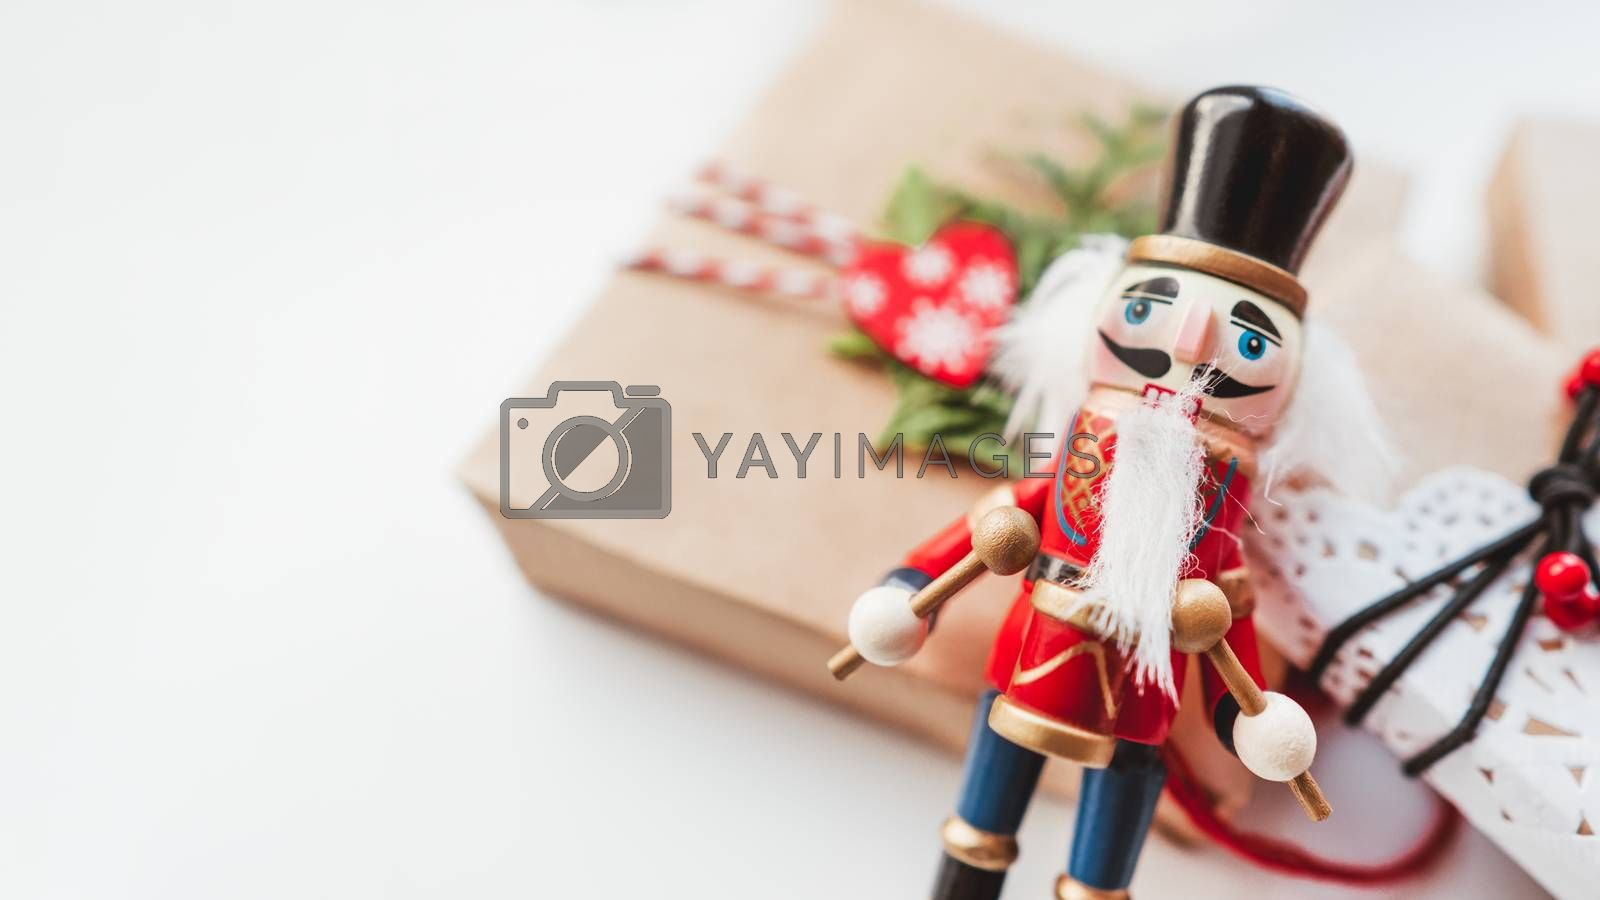 Christmas DIY presents wrapped in craft paper and wooden Nutcracker toy. Decorations on New Year gifts. Festive background. Winter holiday spirit. White background with copy space. by aksenovko